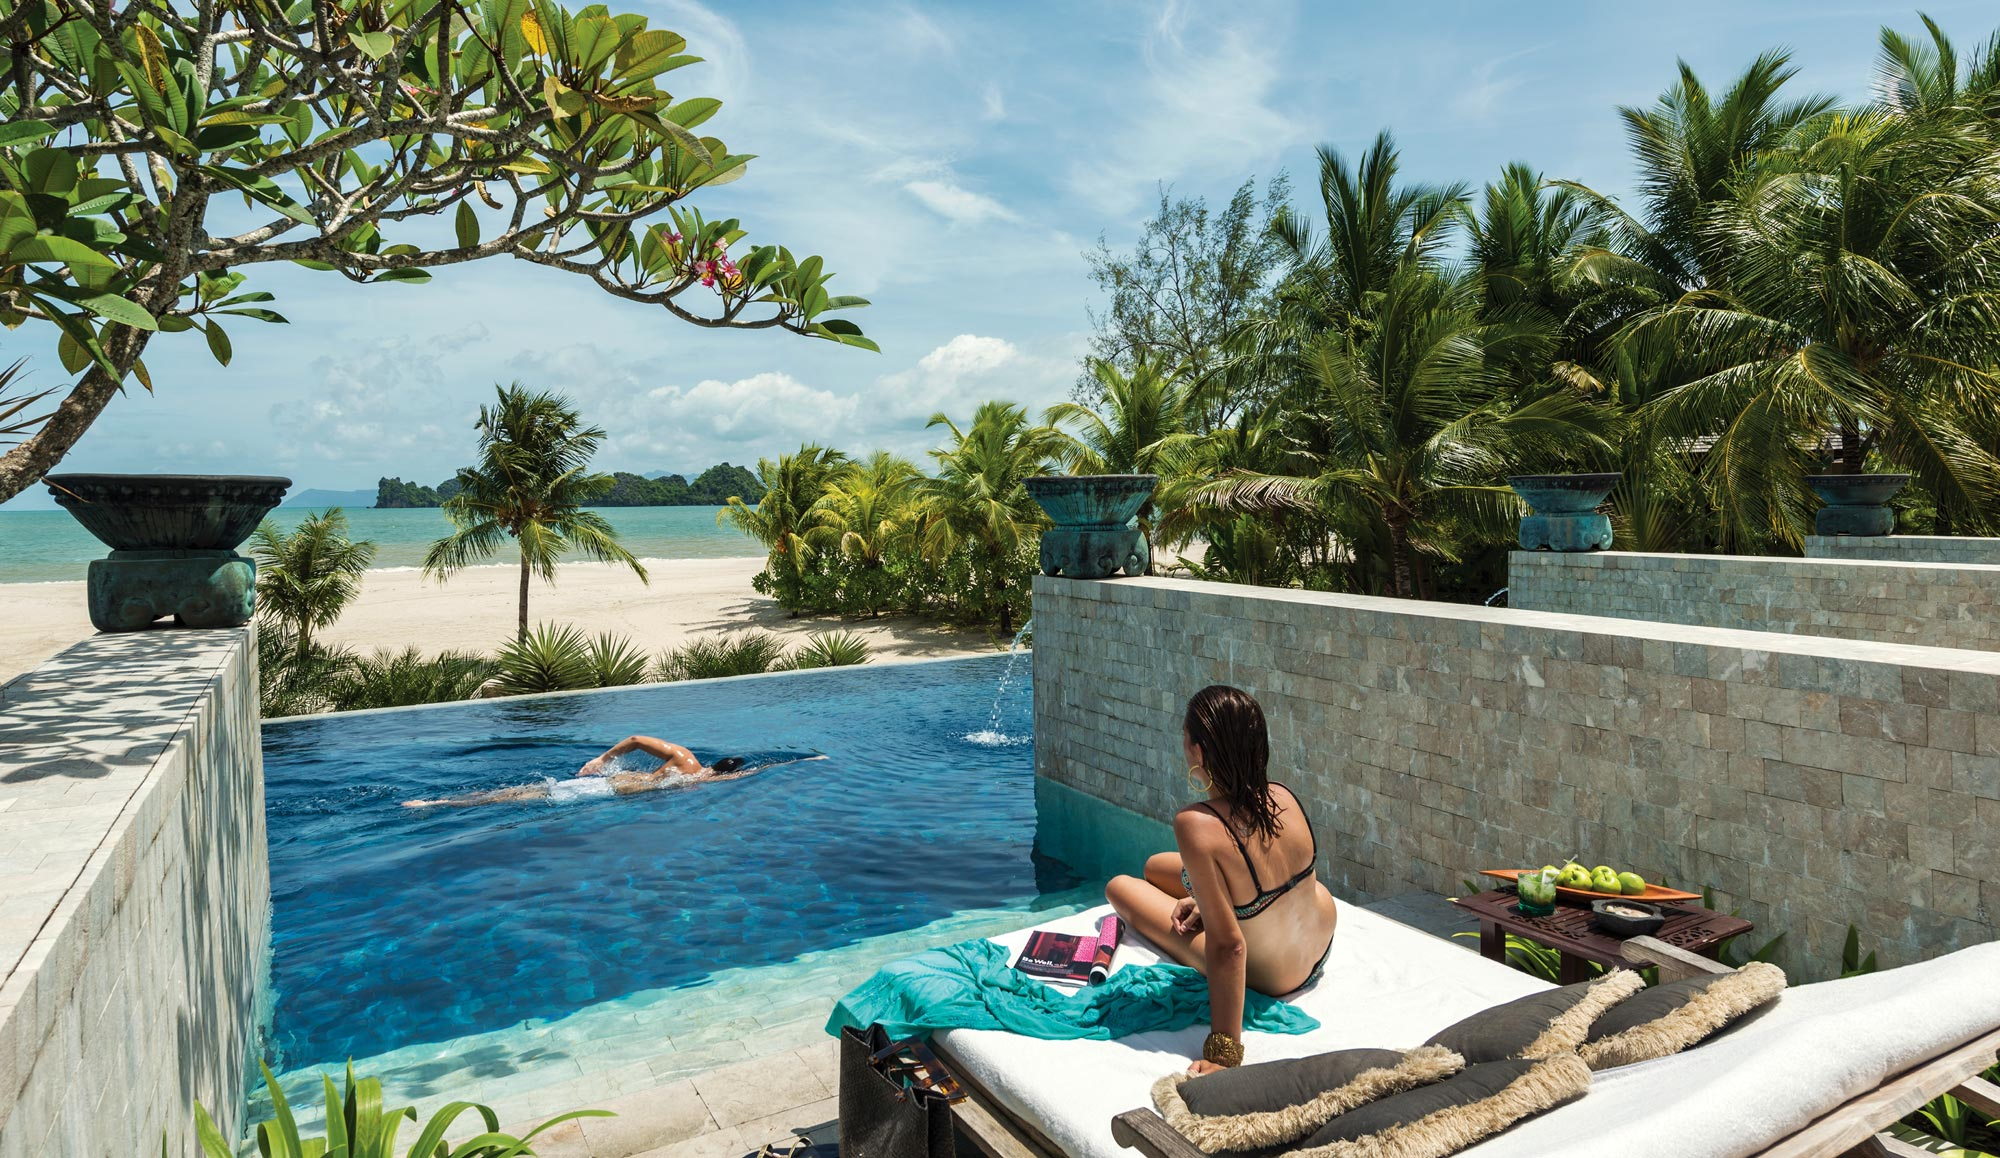 Pool cabana at Four Seasons Langkawi, perfect for a short vacation to recharge and refresh